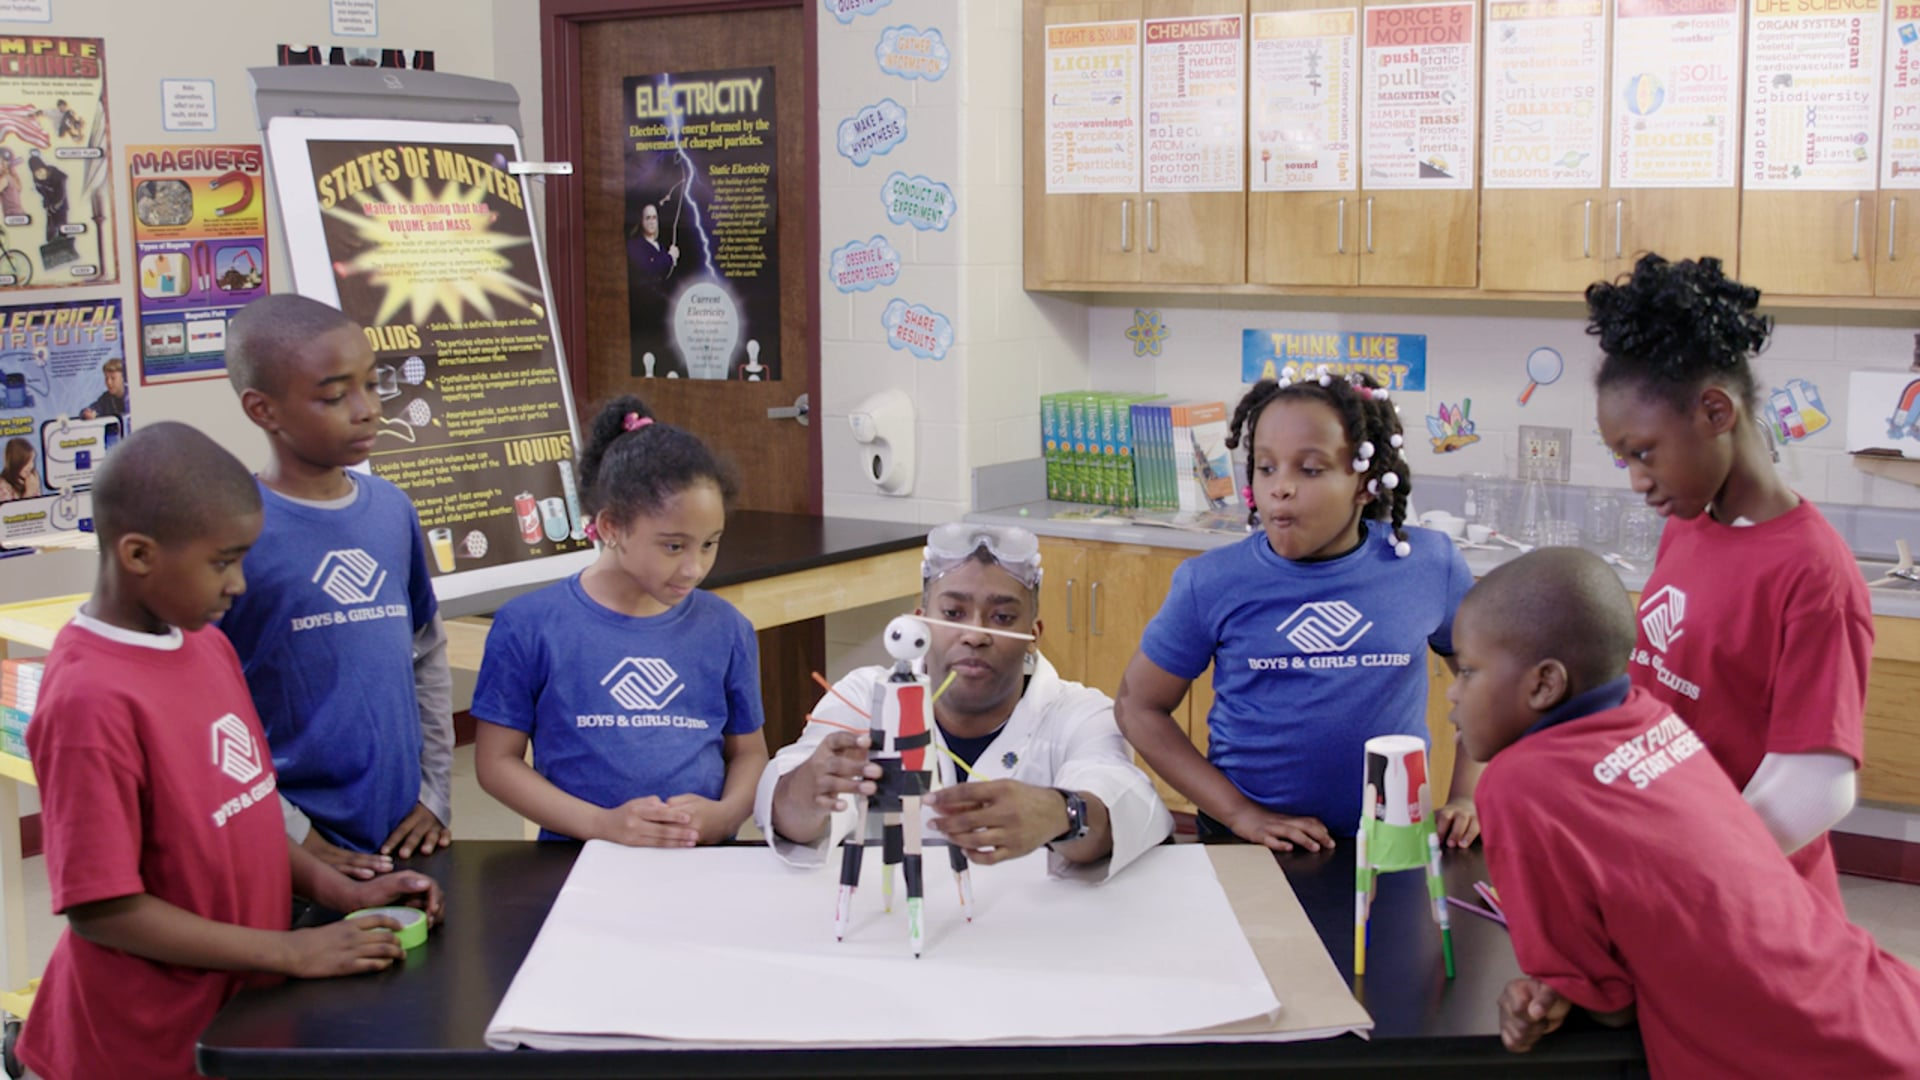 Boys & Girls Clubs: STEM ENERGY & ELECTRICITY (2016) Directed by Jose A. Acosta.